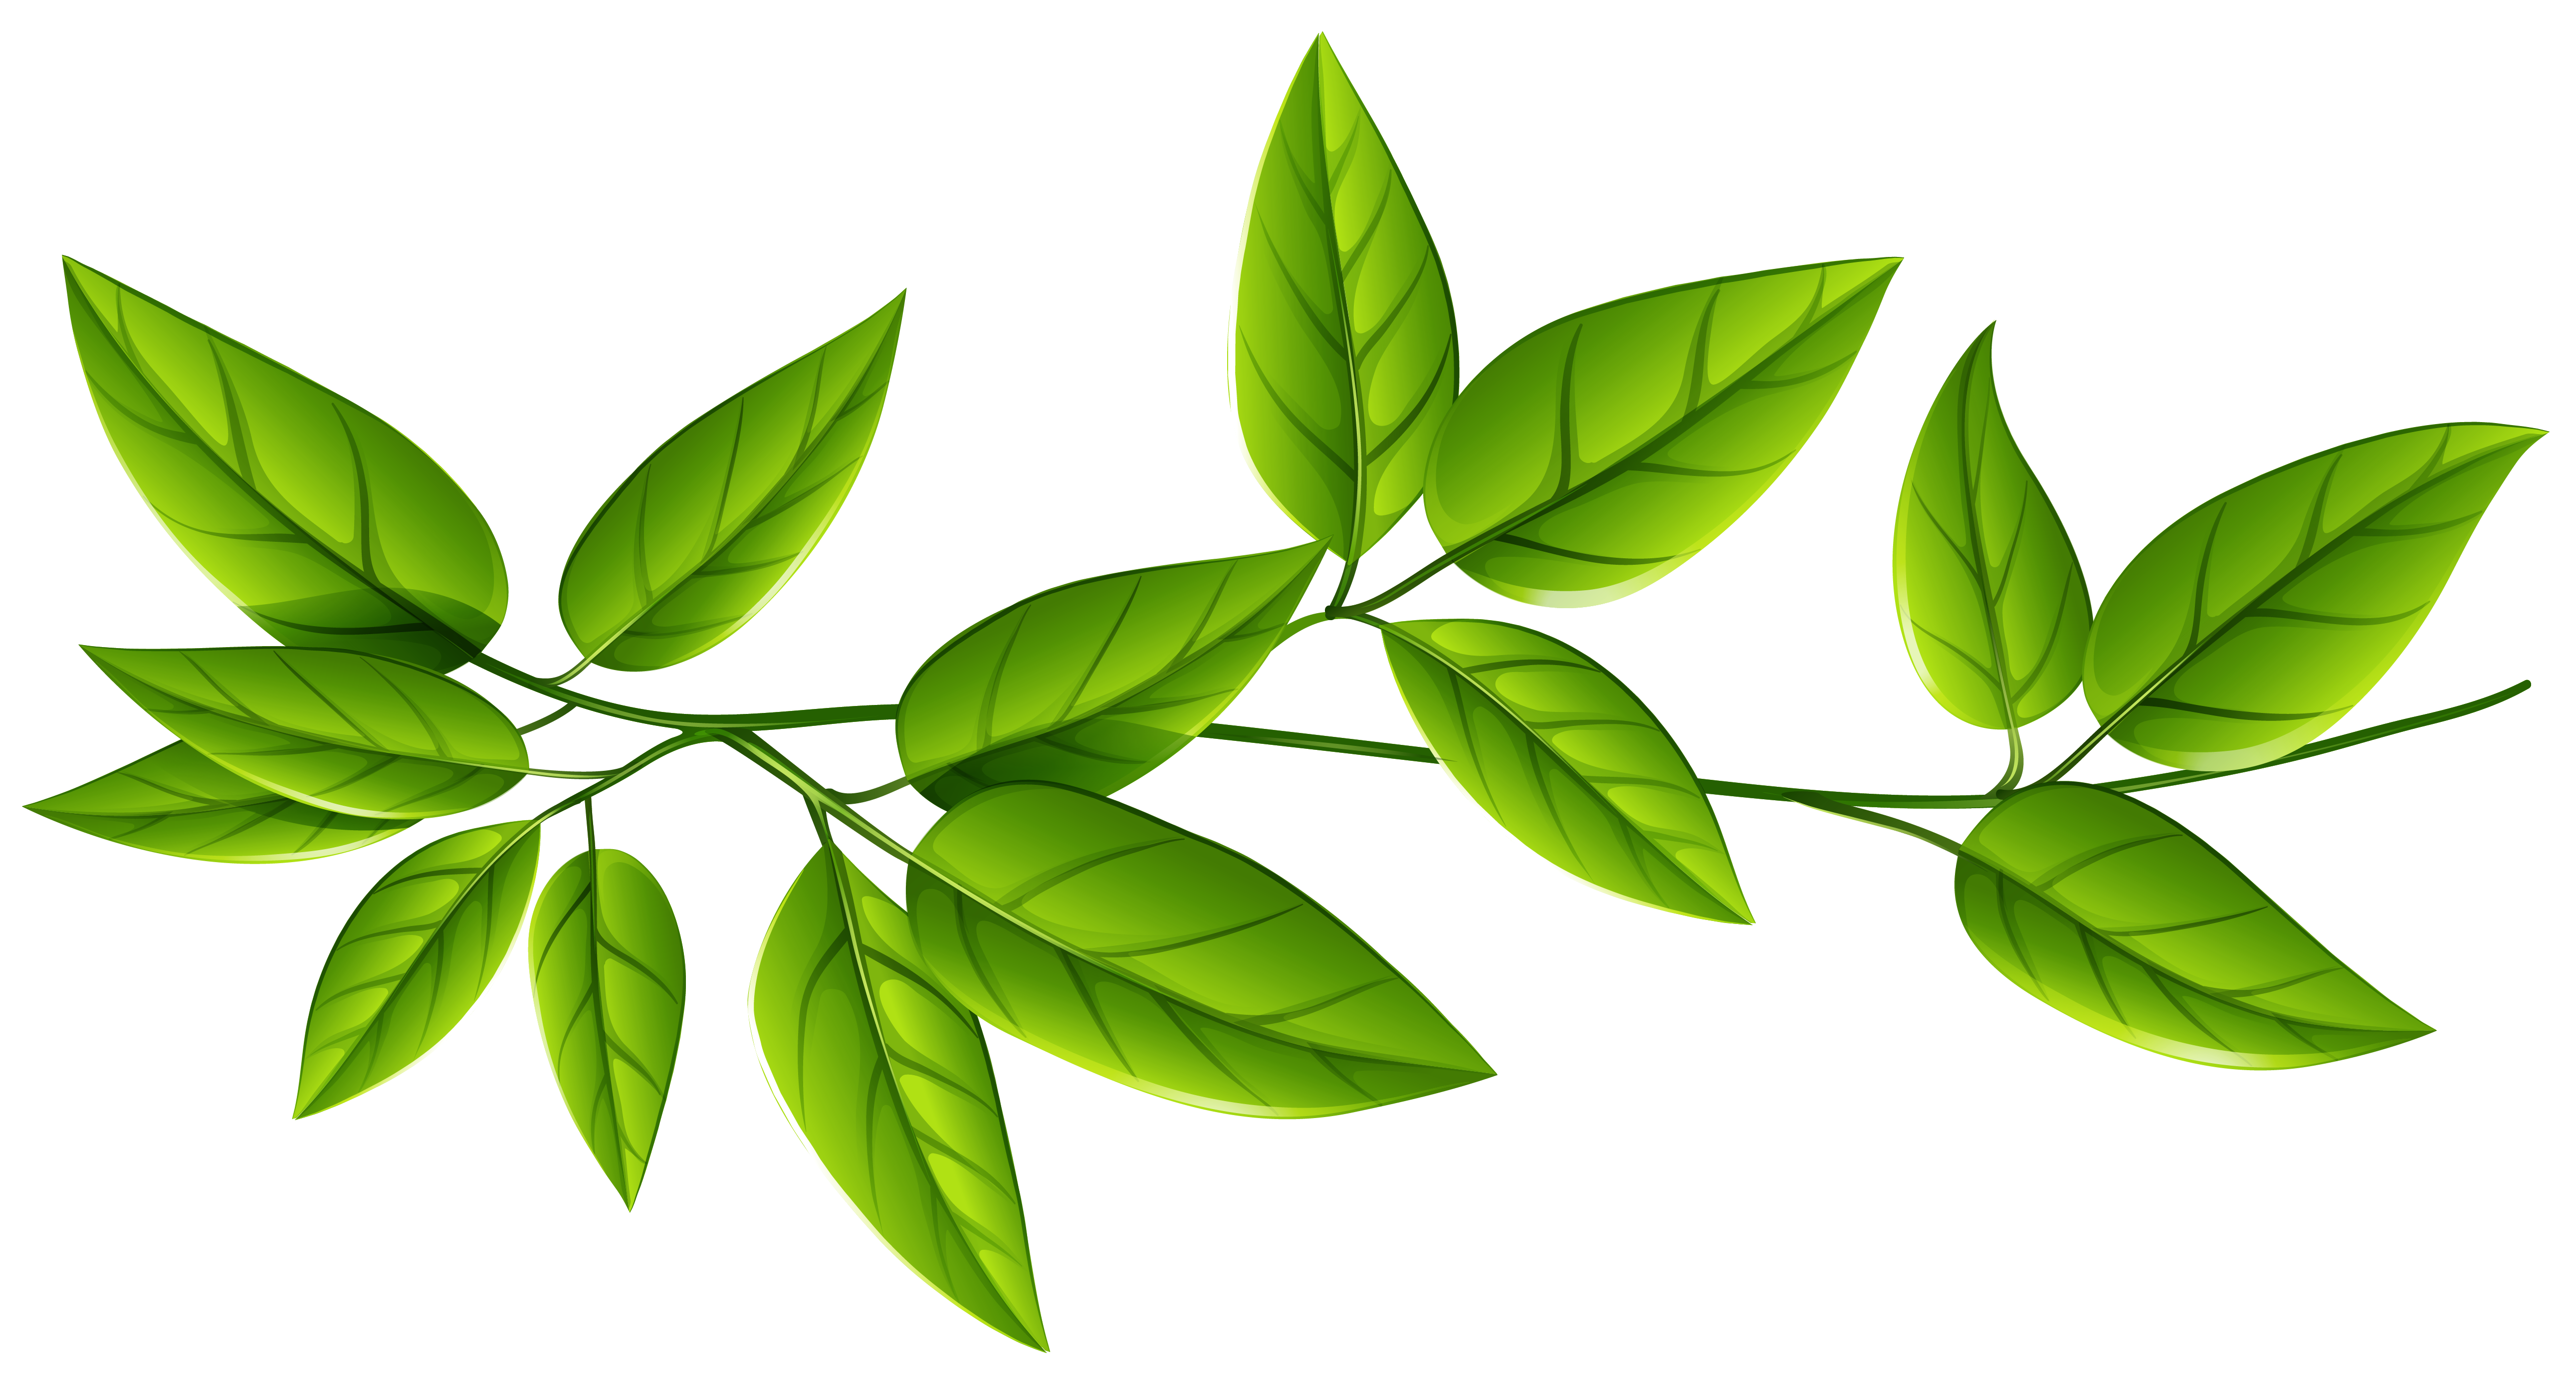 Green Leaves PNG Image | Gallery Yopriceville - High-Quality Images ...